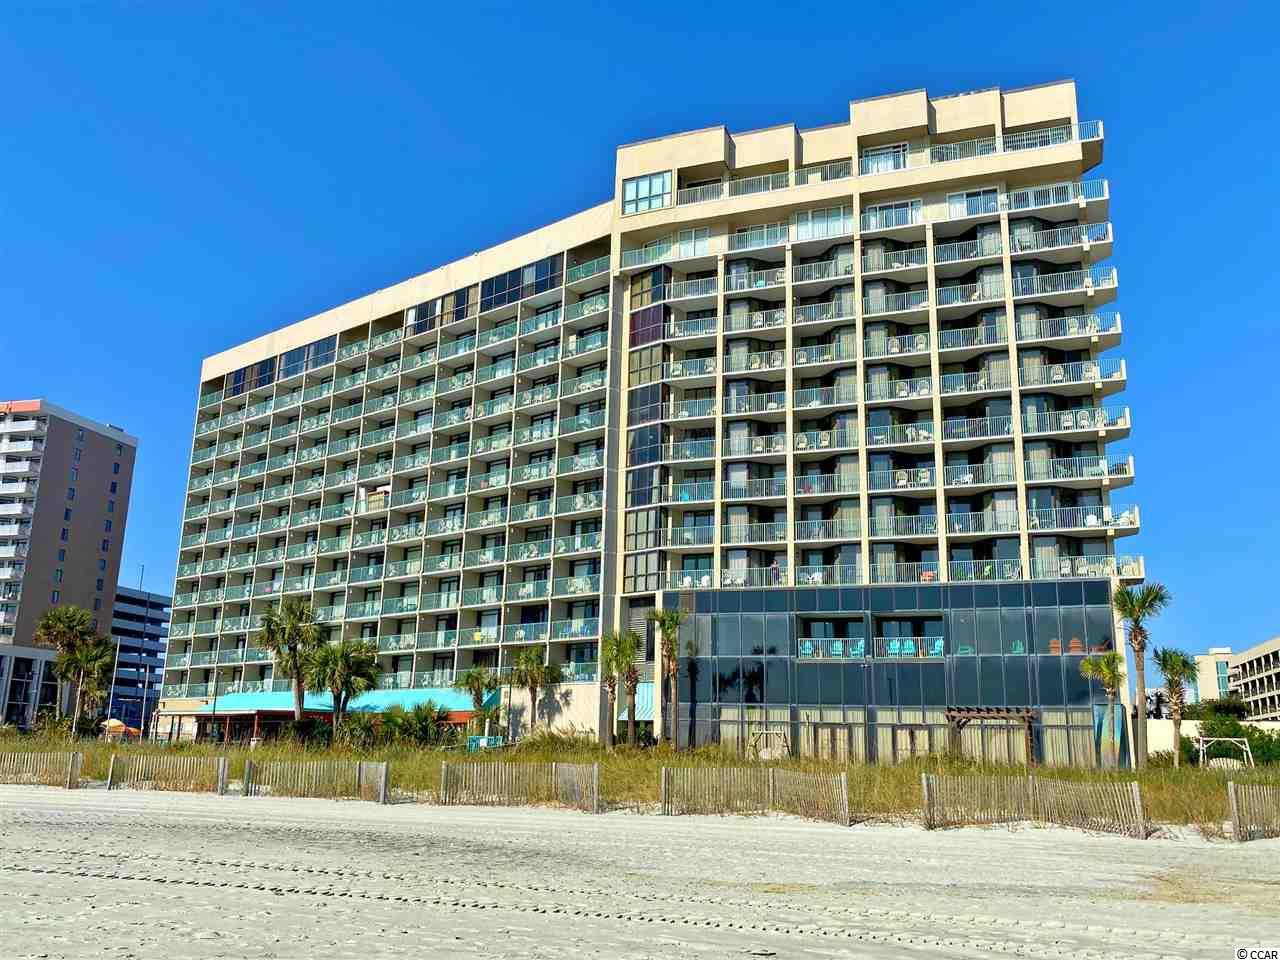 Ocean view two bedroom lockout, a must see for that perfect getaway you have been looking for. It is a two bedroom lockout with the option of renting separately. recently painted and has new laminate wood flooring.  Unit is Near all fine dining restaurants here in Myrtle beach and shopping areas like Tanger outlets and Barefoot landing. Resort has many amenities to enjoy with your family including indoor / outdoor pools, water parks, Sand Dunes Resort also offers an Oceanside 74 Restaurant & Lounge, Mia's Pizza and Subs, Sands Water Park, Seagull Cafe & Lounge, Fun Zone/Arcade, The Dunes Gift Shop, Convenience and Beachwear great attractions nearby like Carolina Opry and Pirates voyage. Bring all your potential clients by to take a look!